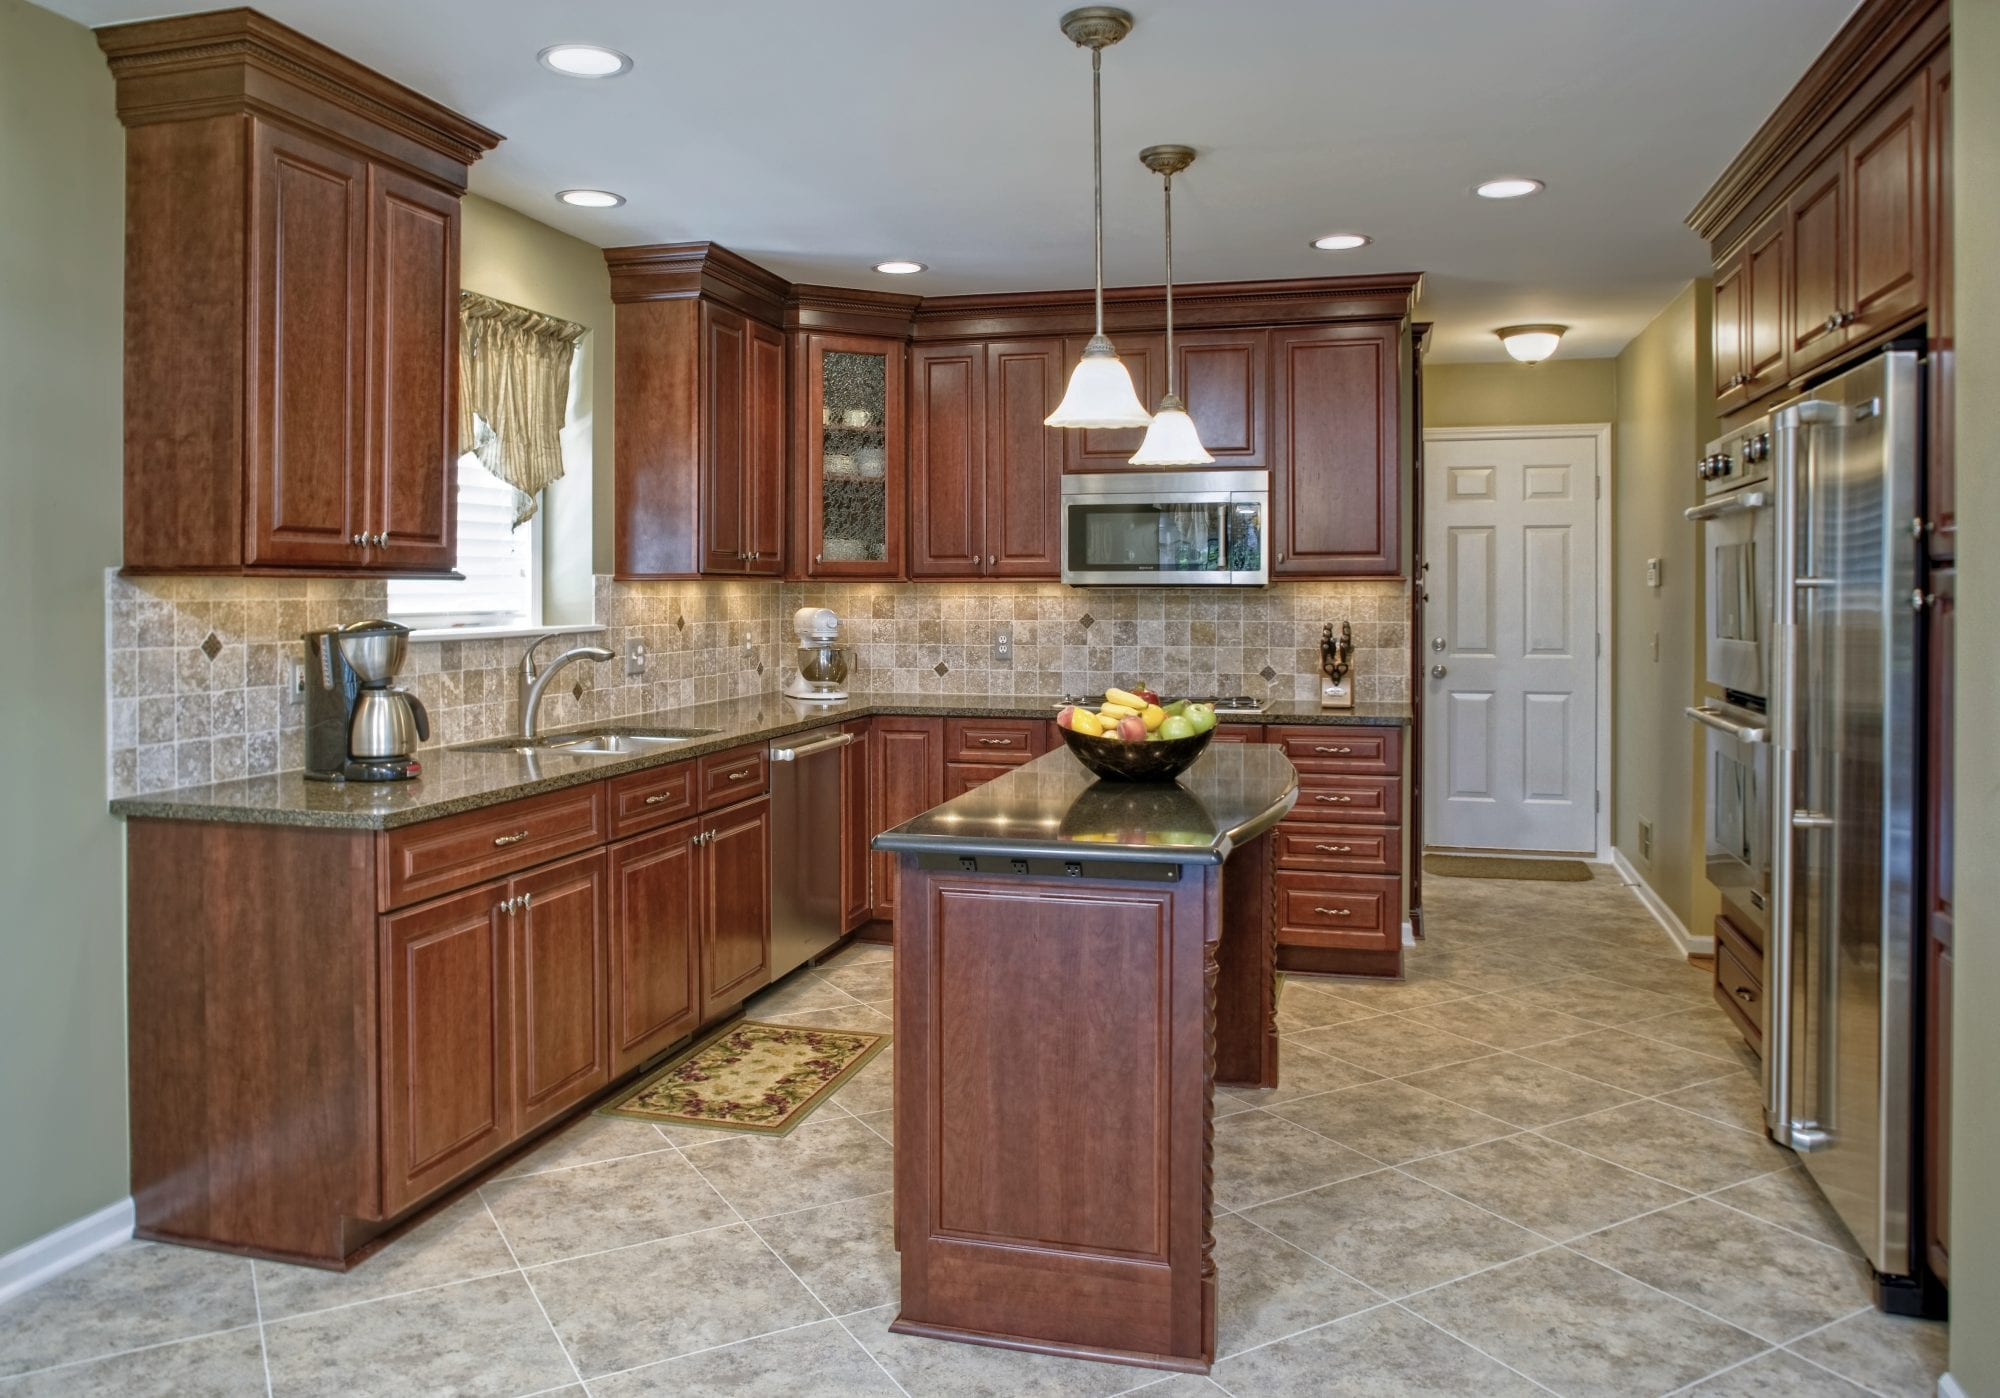 Kitchen Remodeling Columbia Md Model Property Columbia  Md Kitchen Renovation And Remodeling  Trademark .